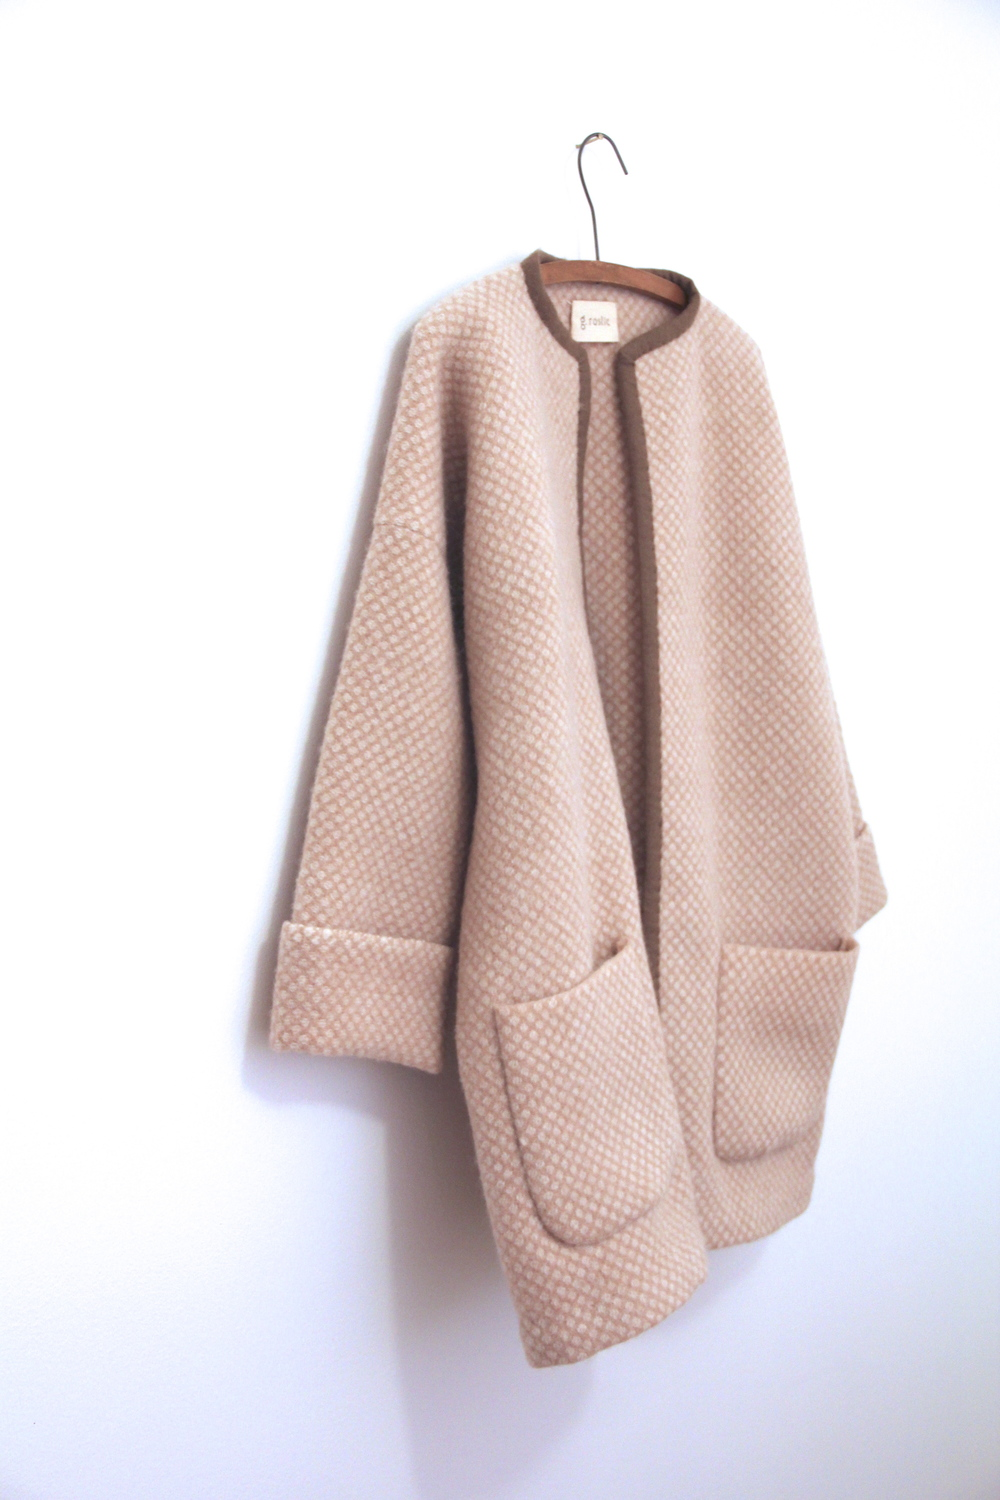 'cafe au lait' cocoon coat